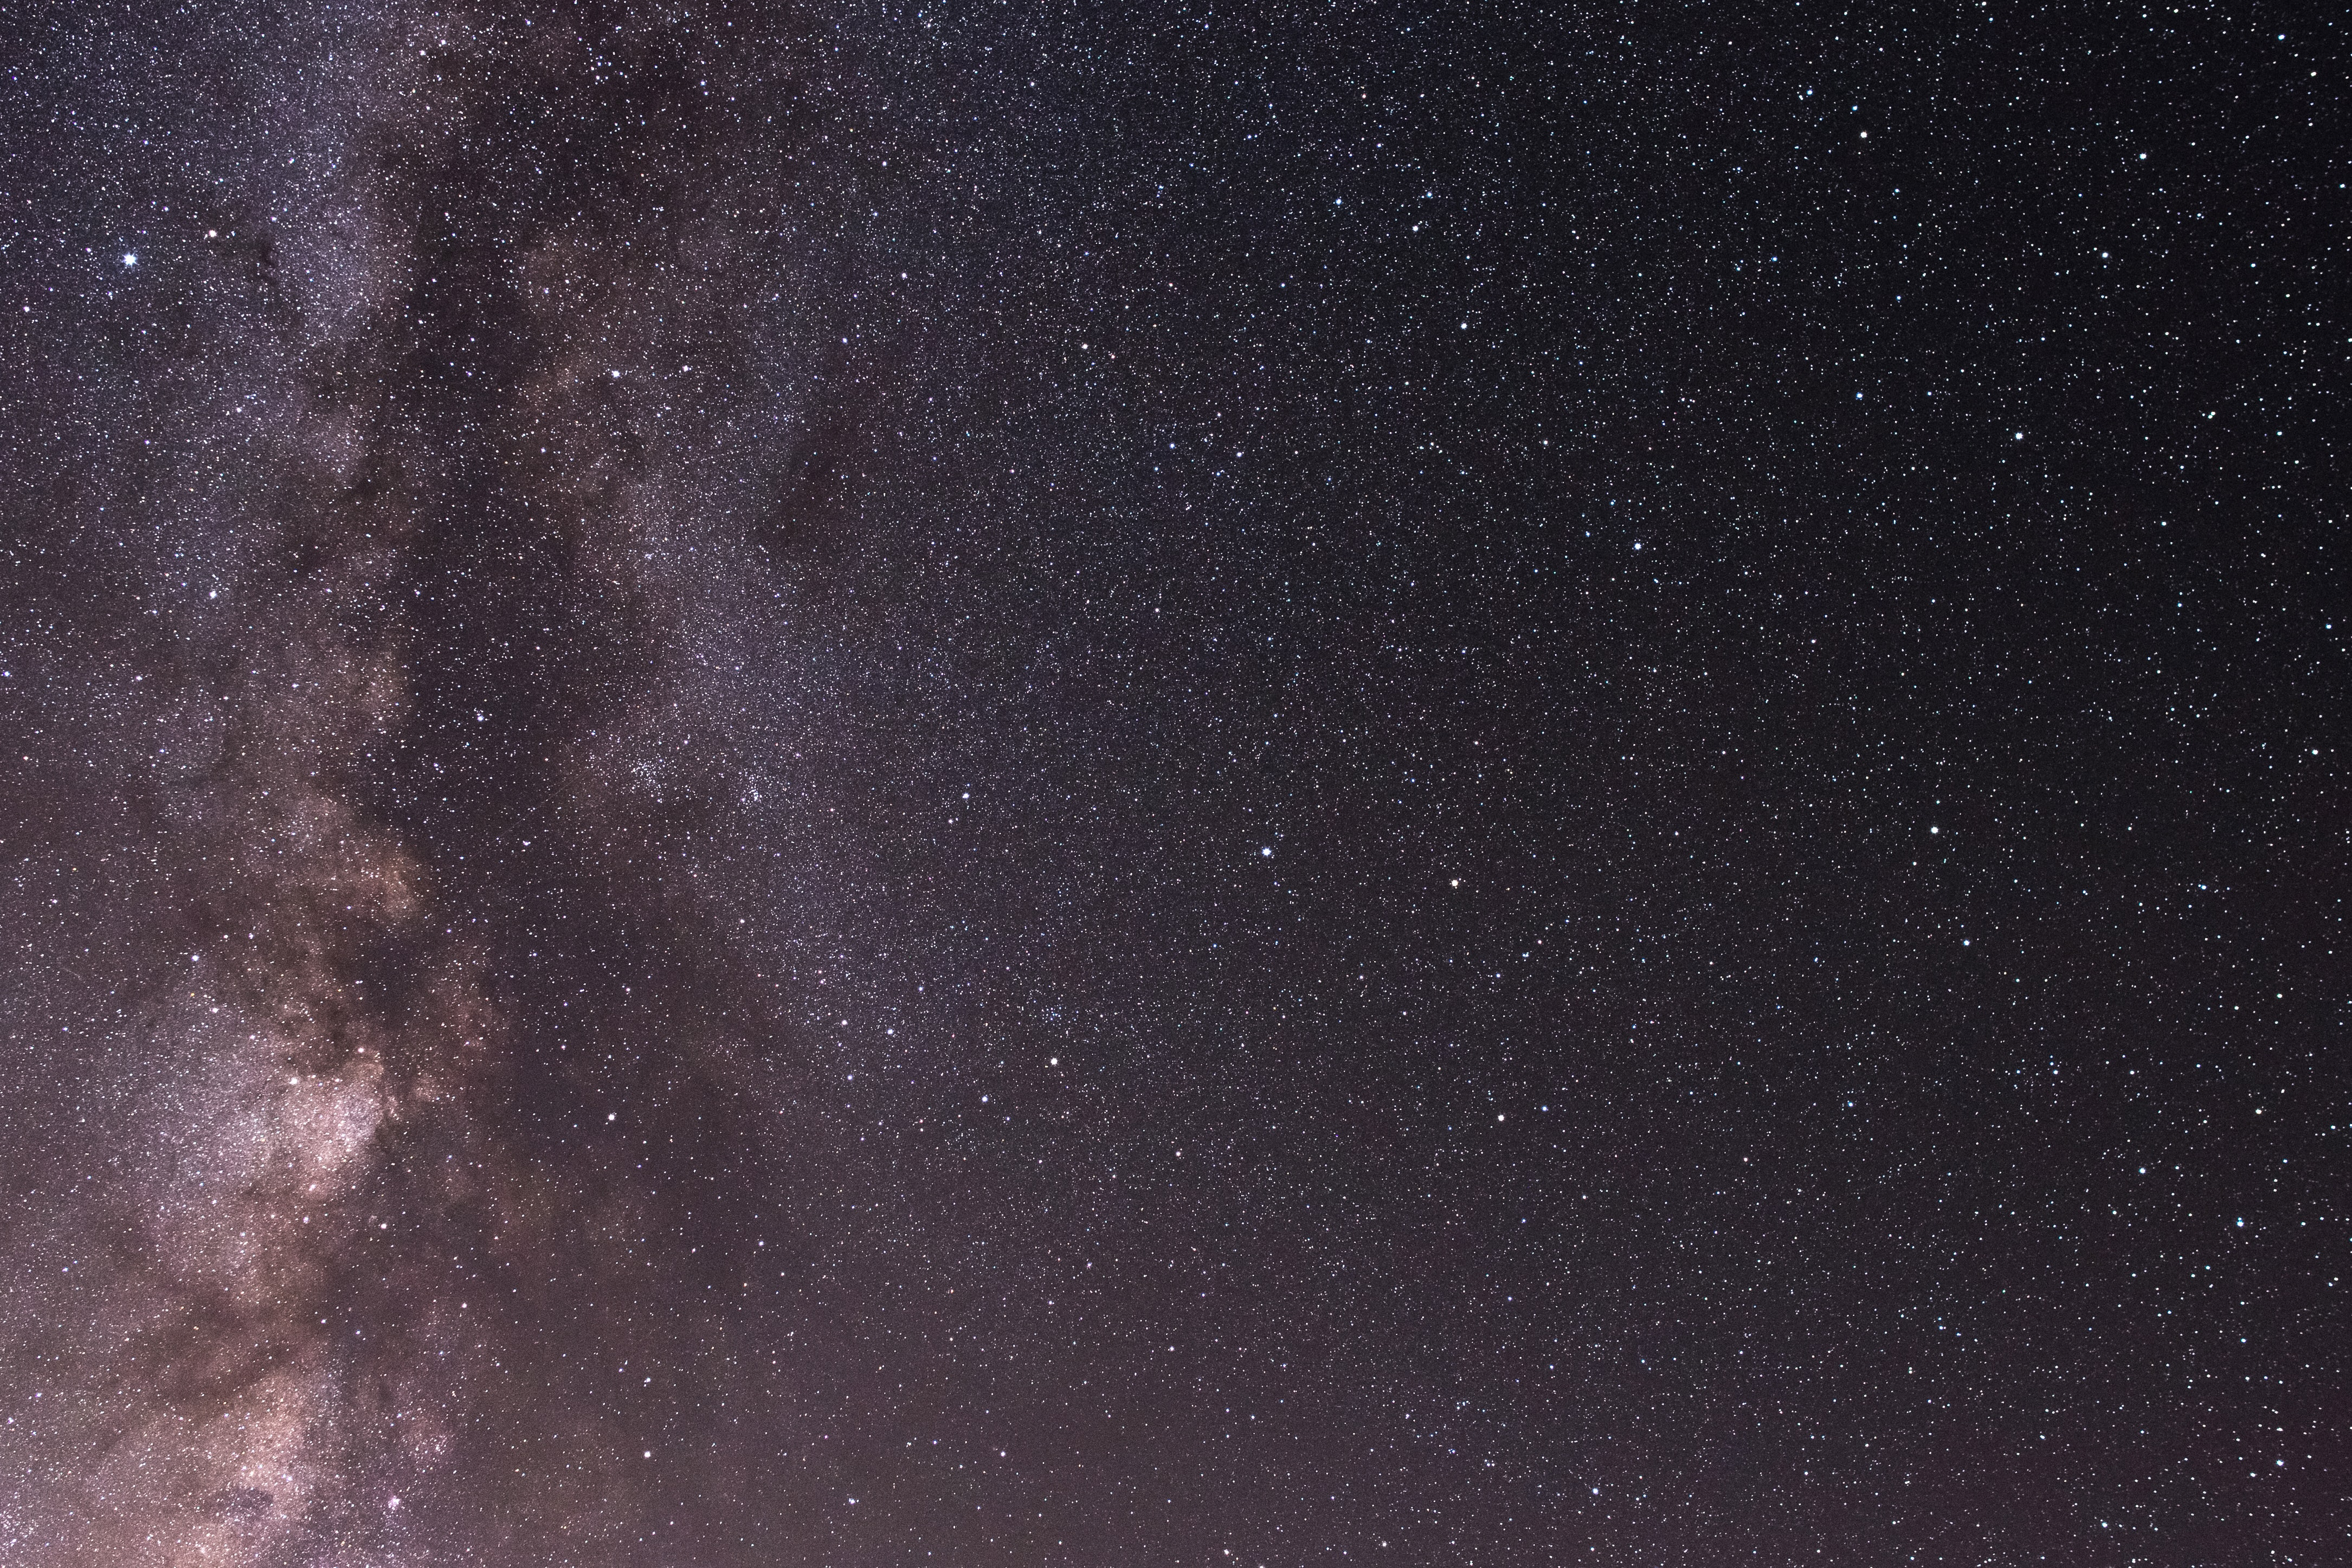 milky way at nighttime